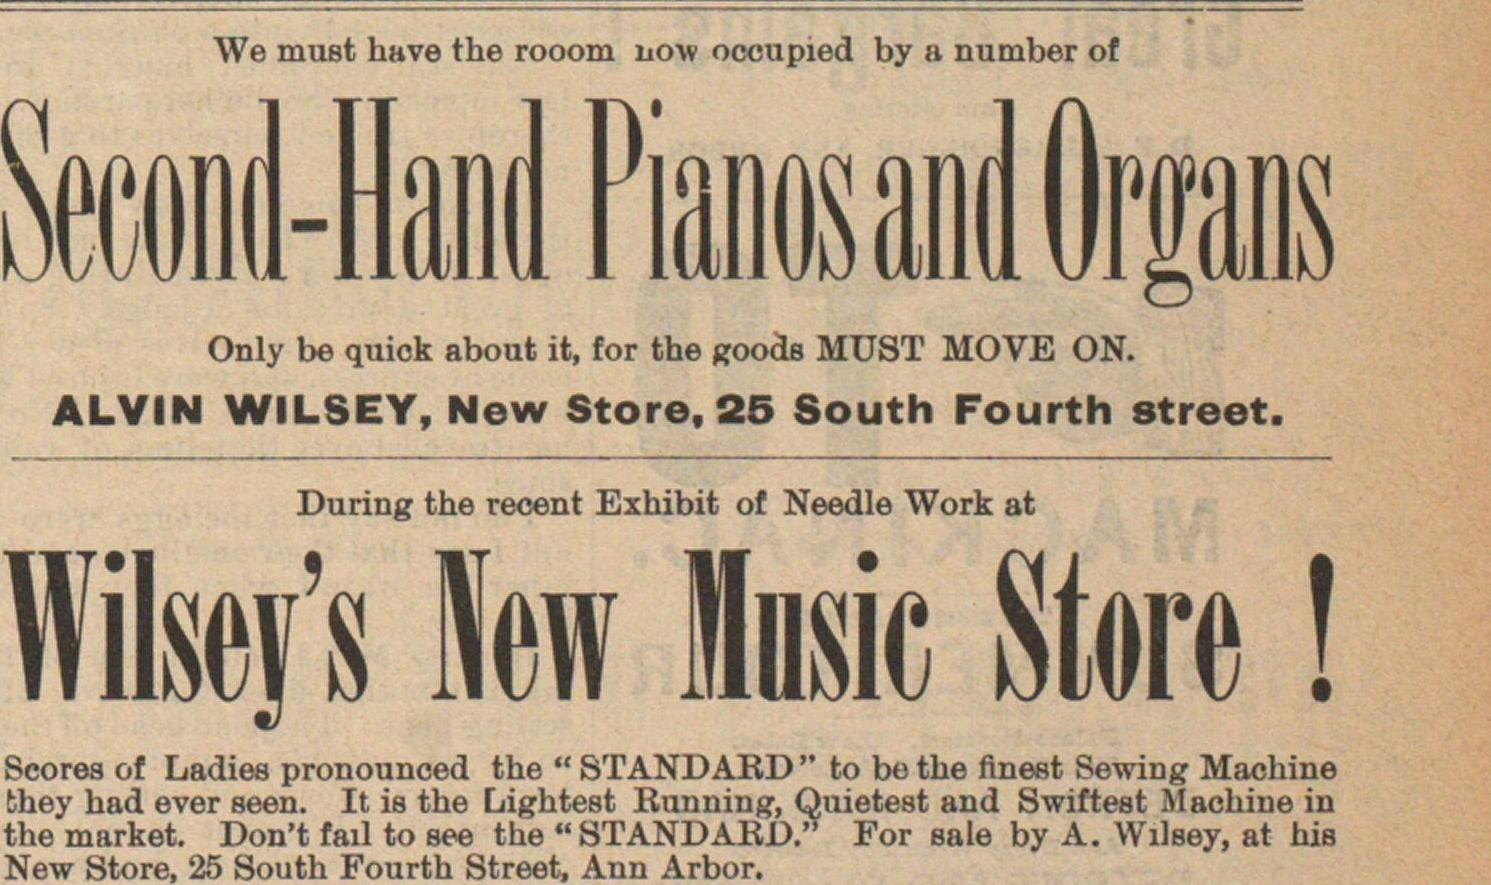 Second - Hand Pianos And Organs image